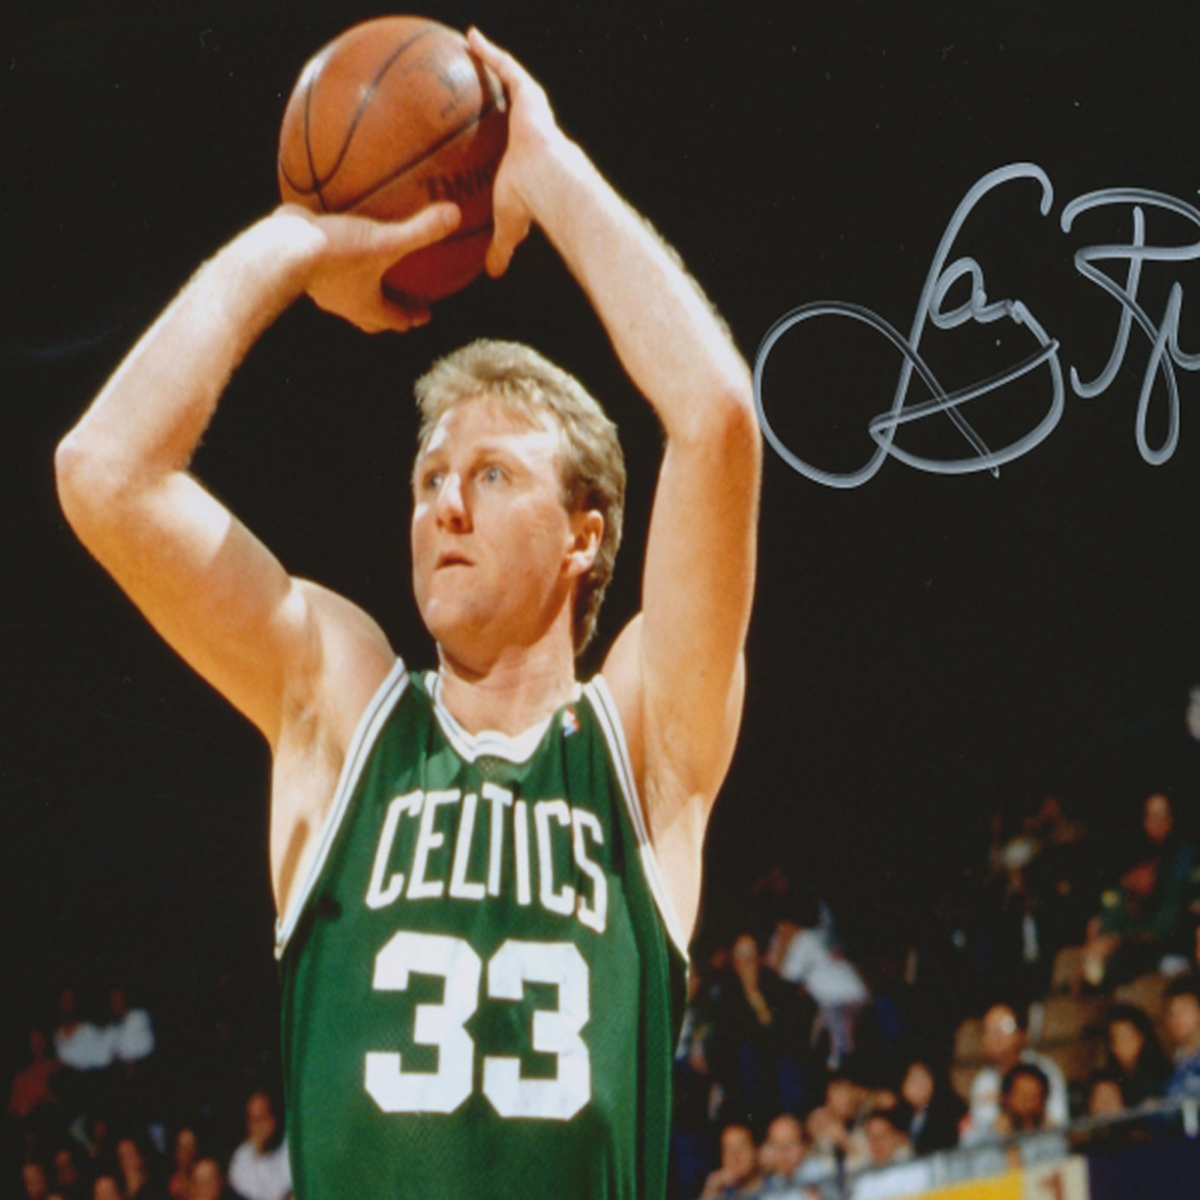 Larry Bird's sensational three-point shot.